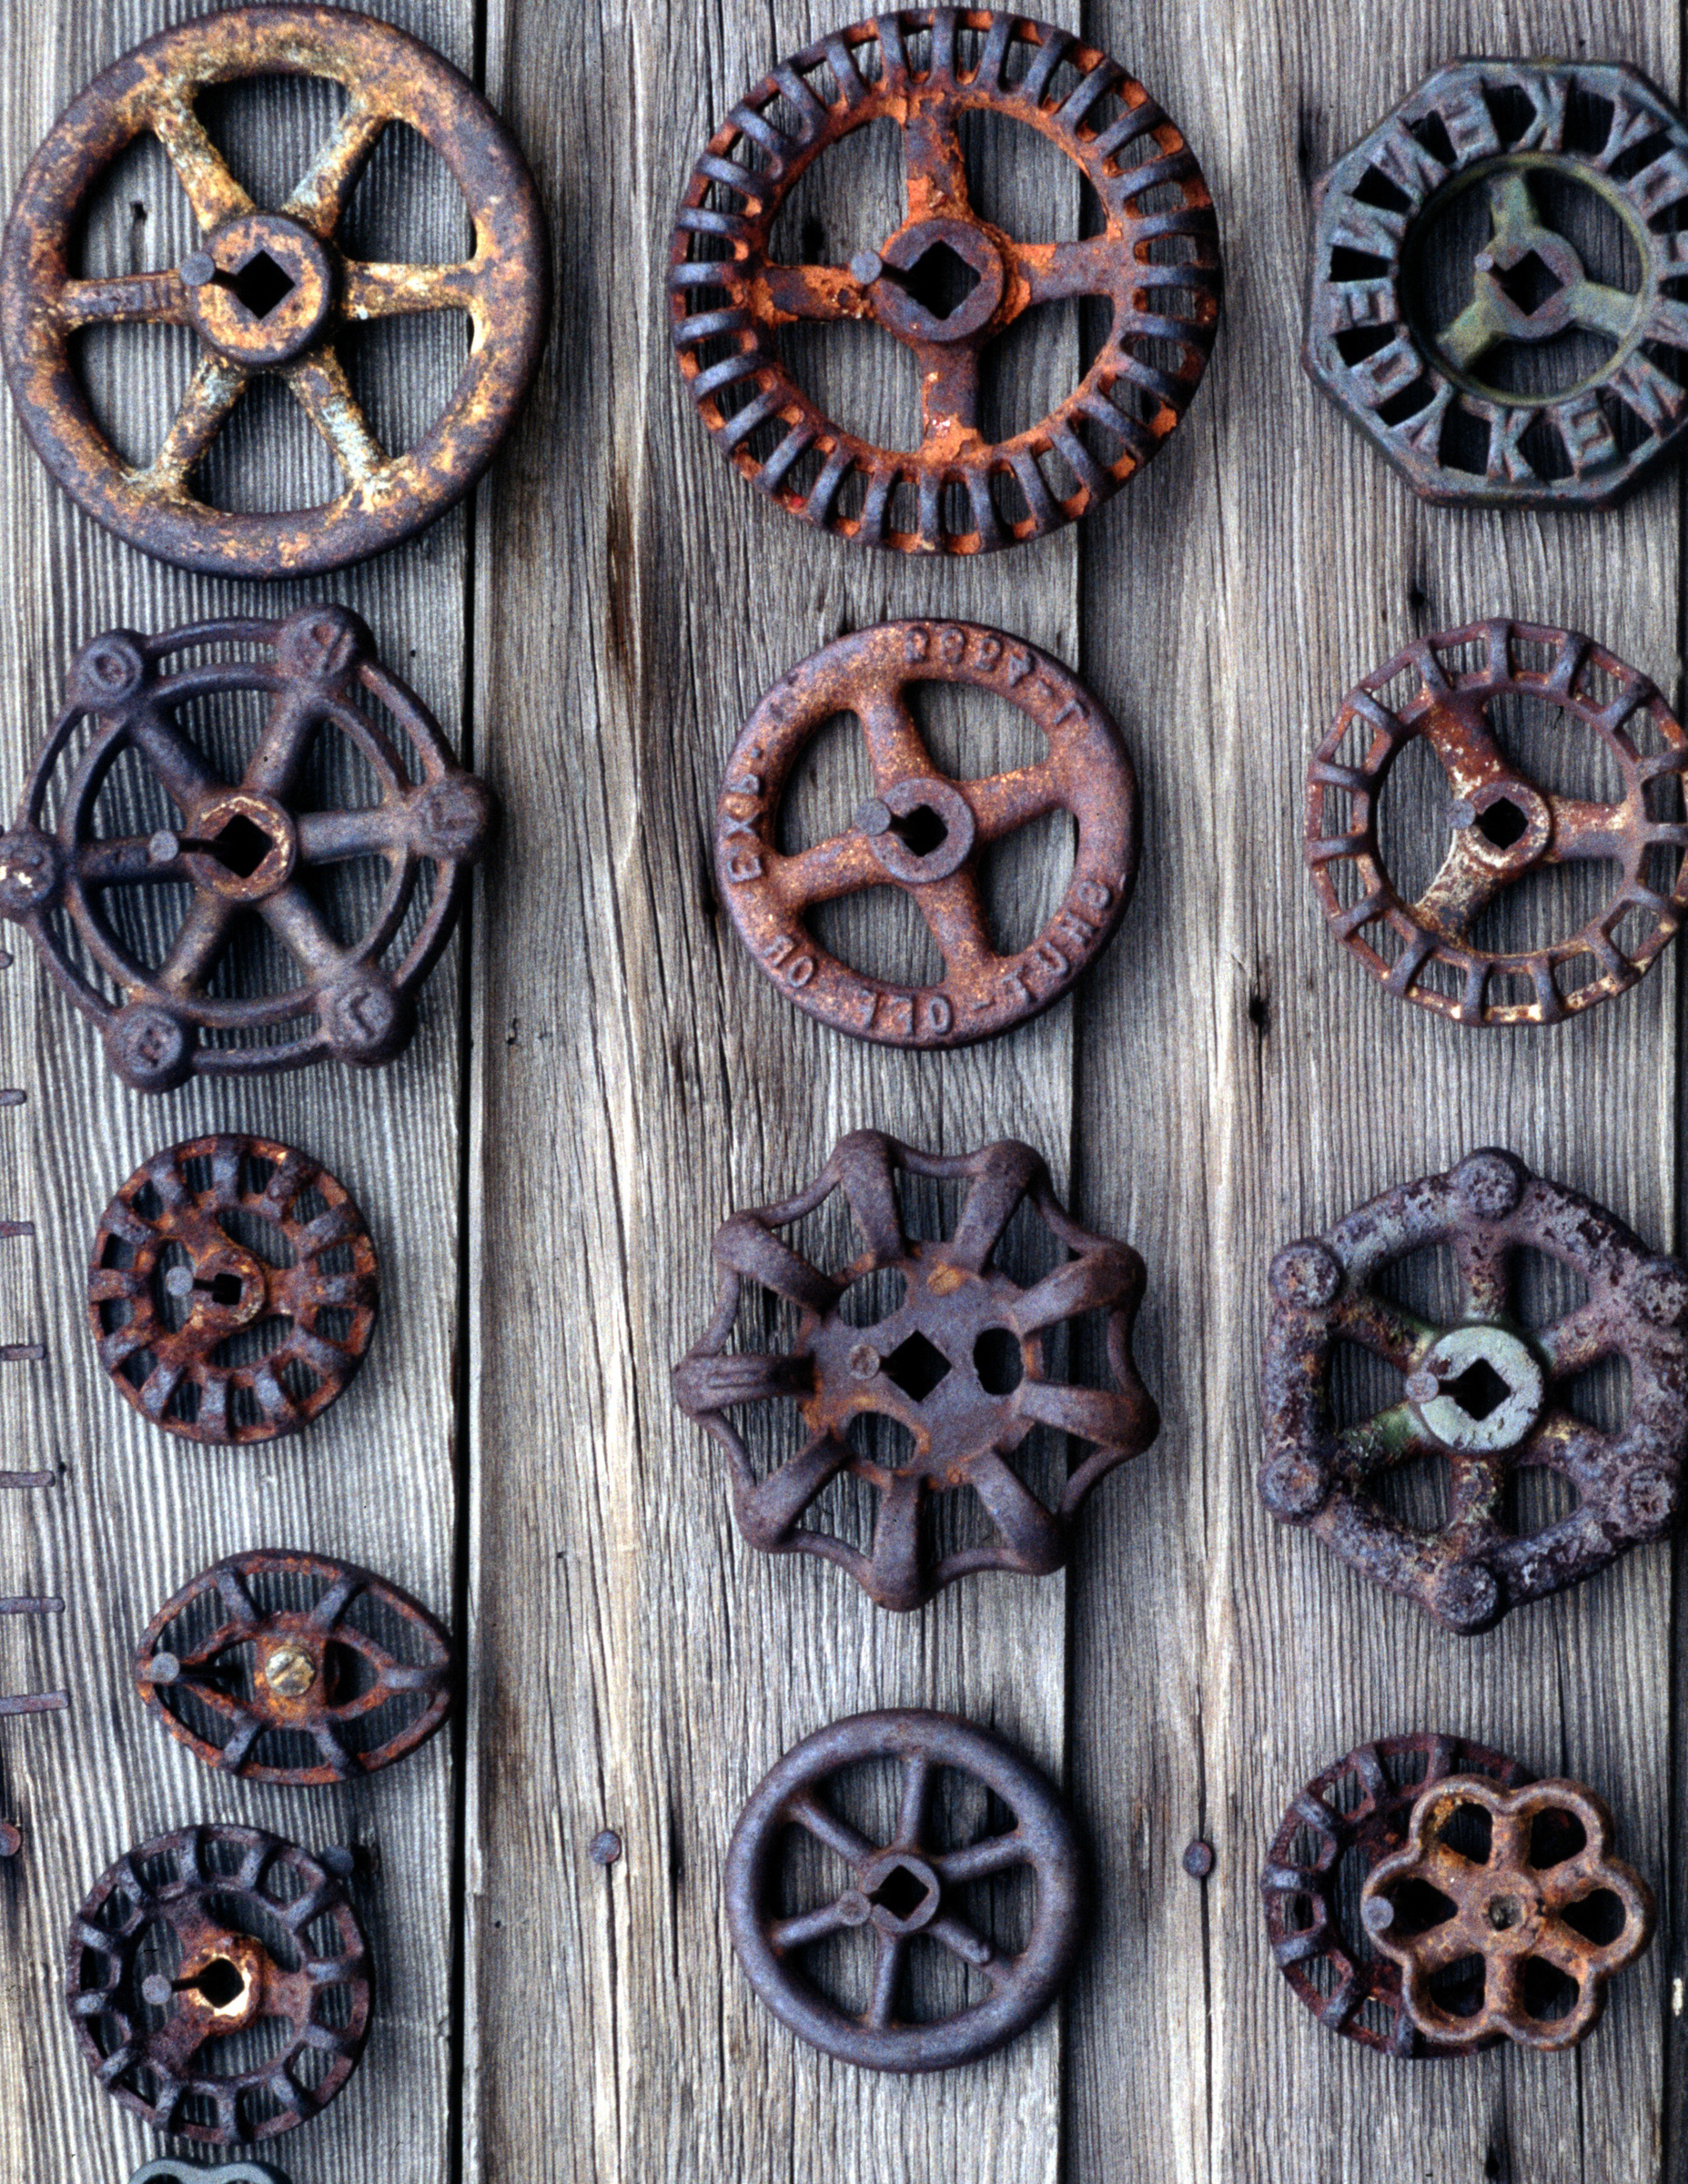 Series of Gears